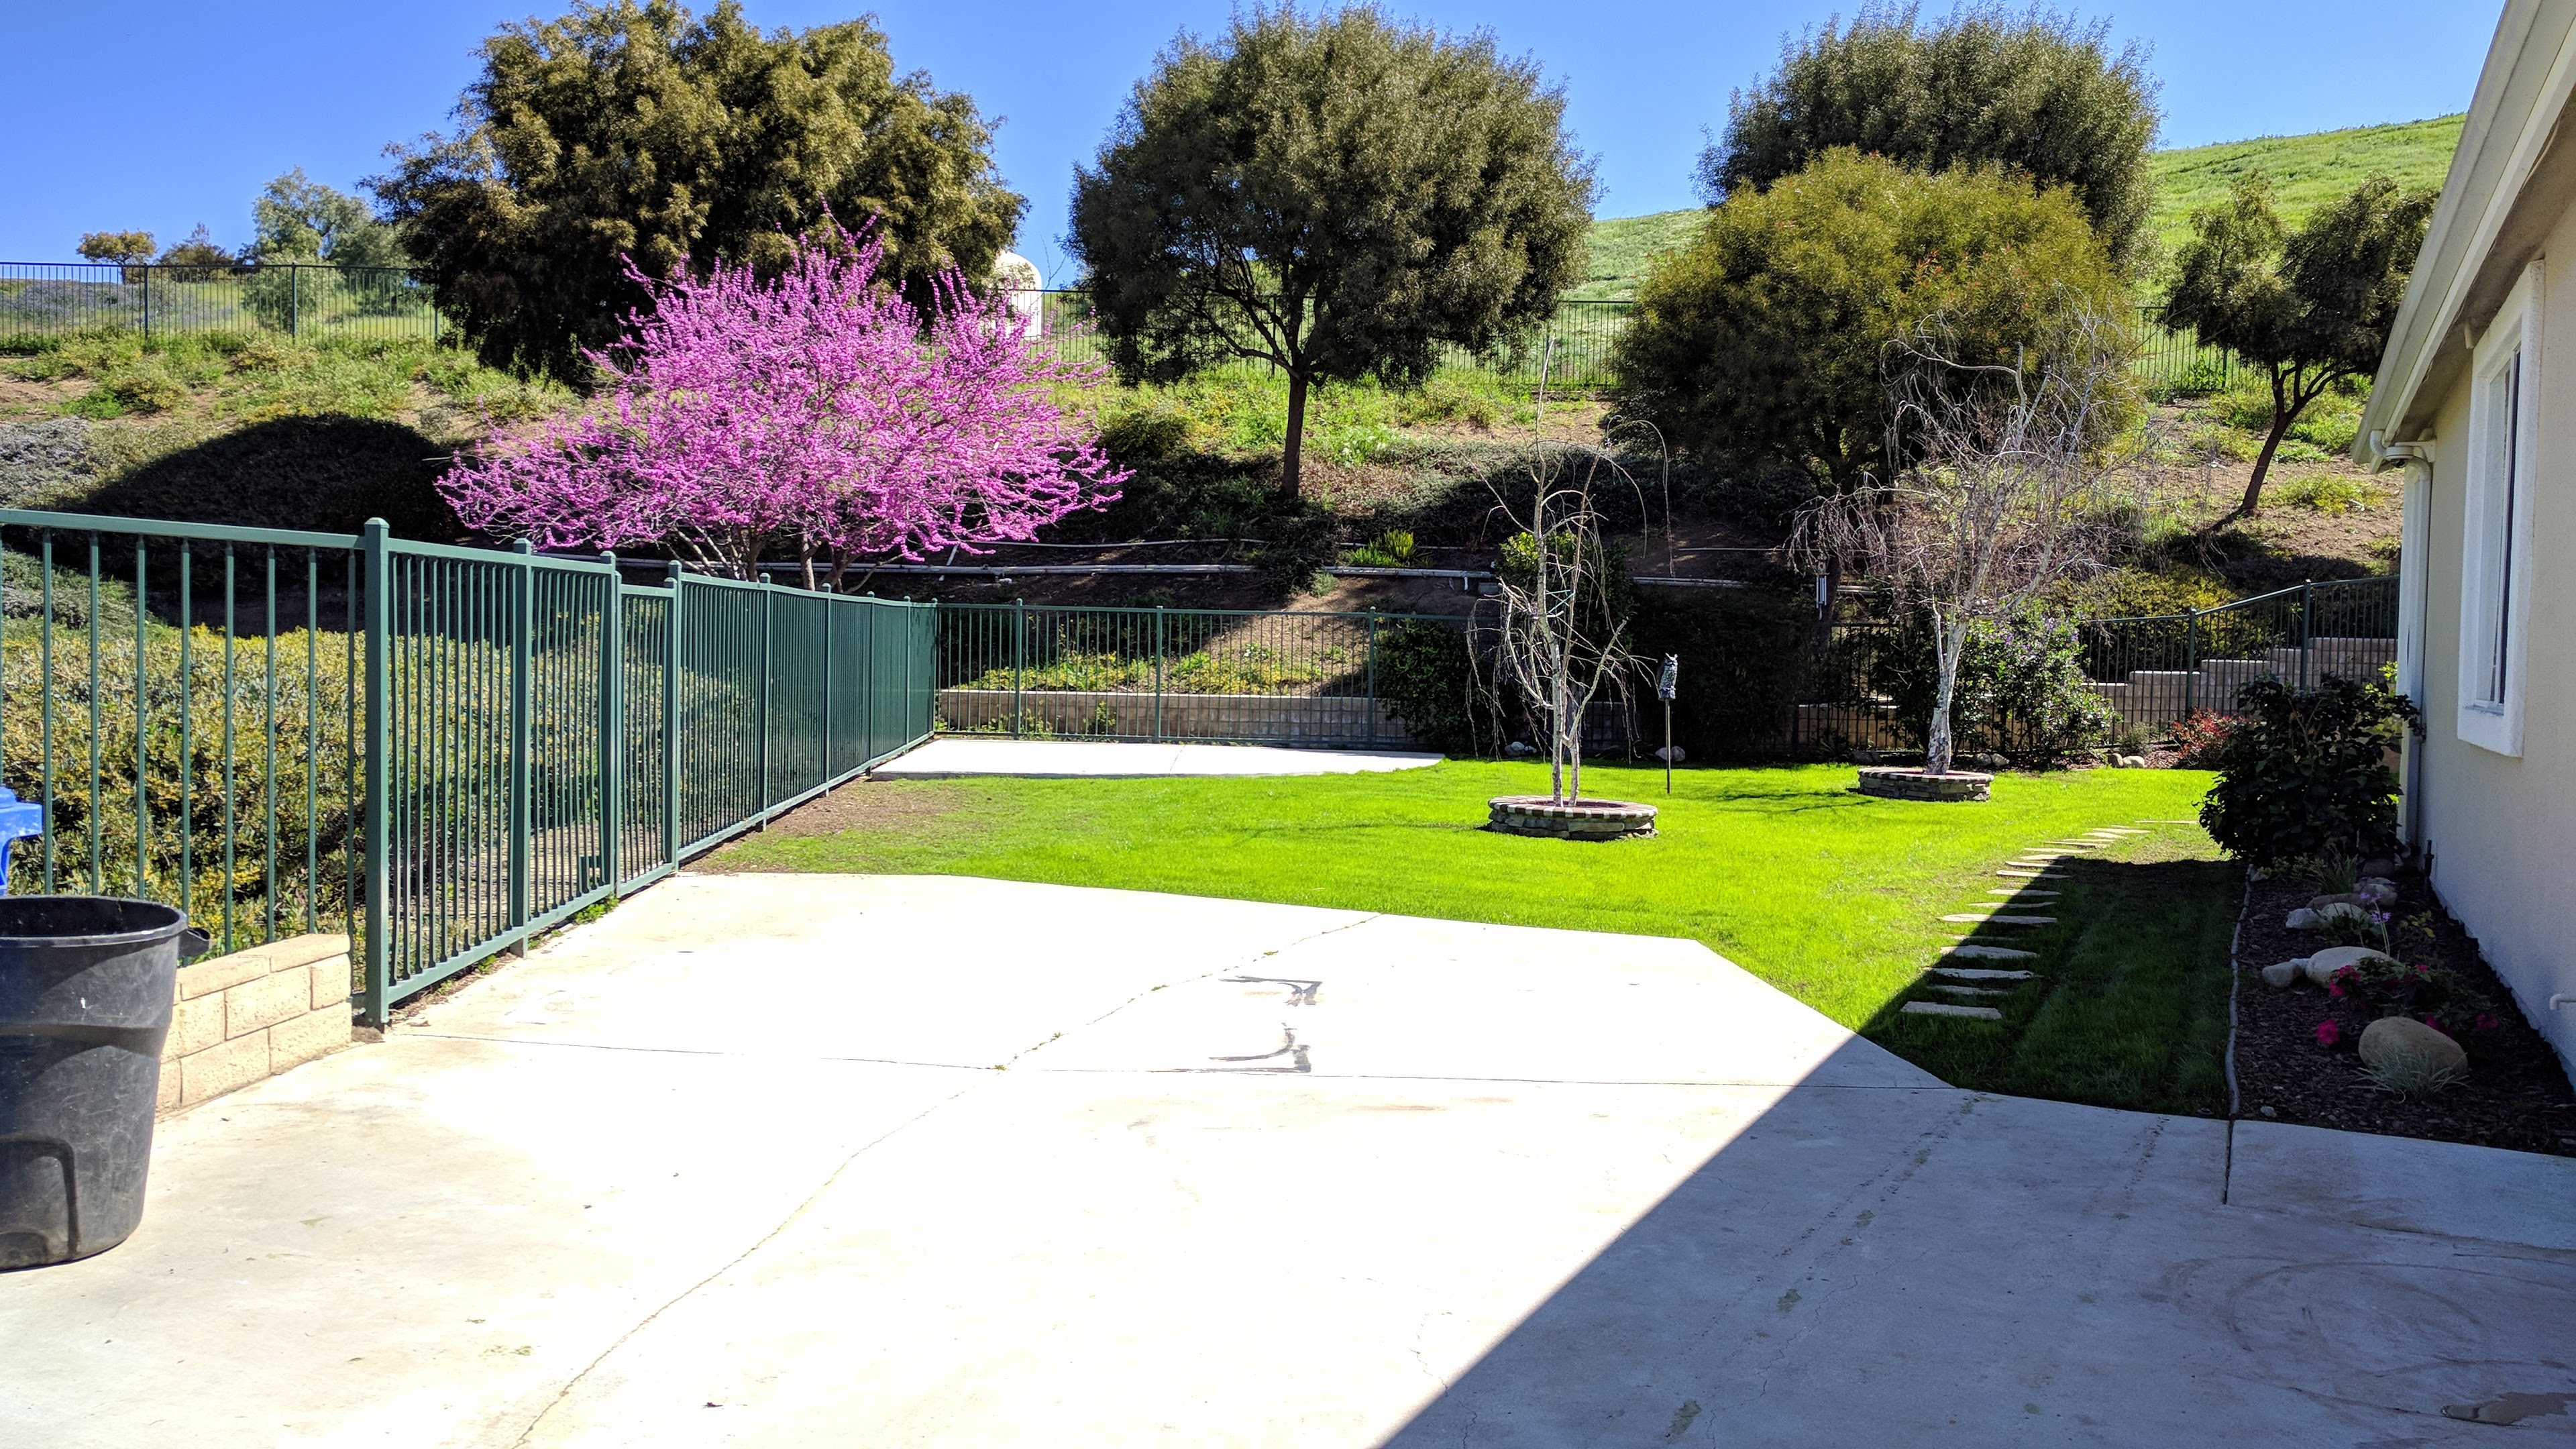 3490 Pine View Dr., Simi Valley - Huggins Homes